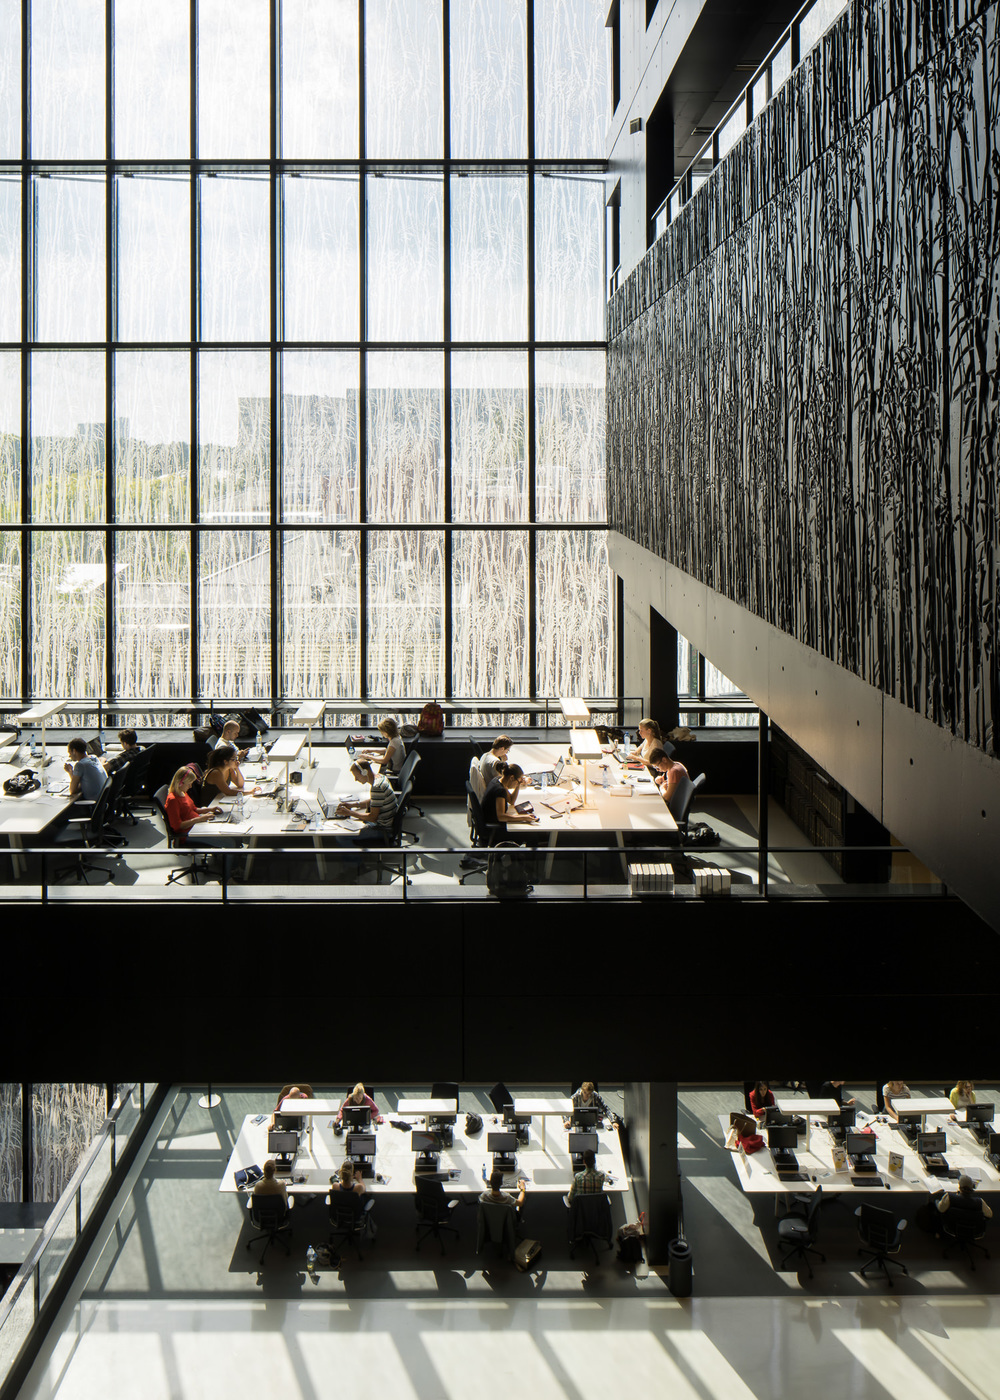 utrecht-university-library-wiel-arets-mark-hadden-photography-03.jpg